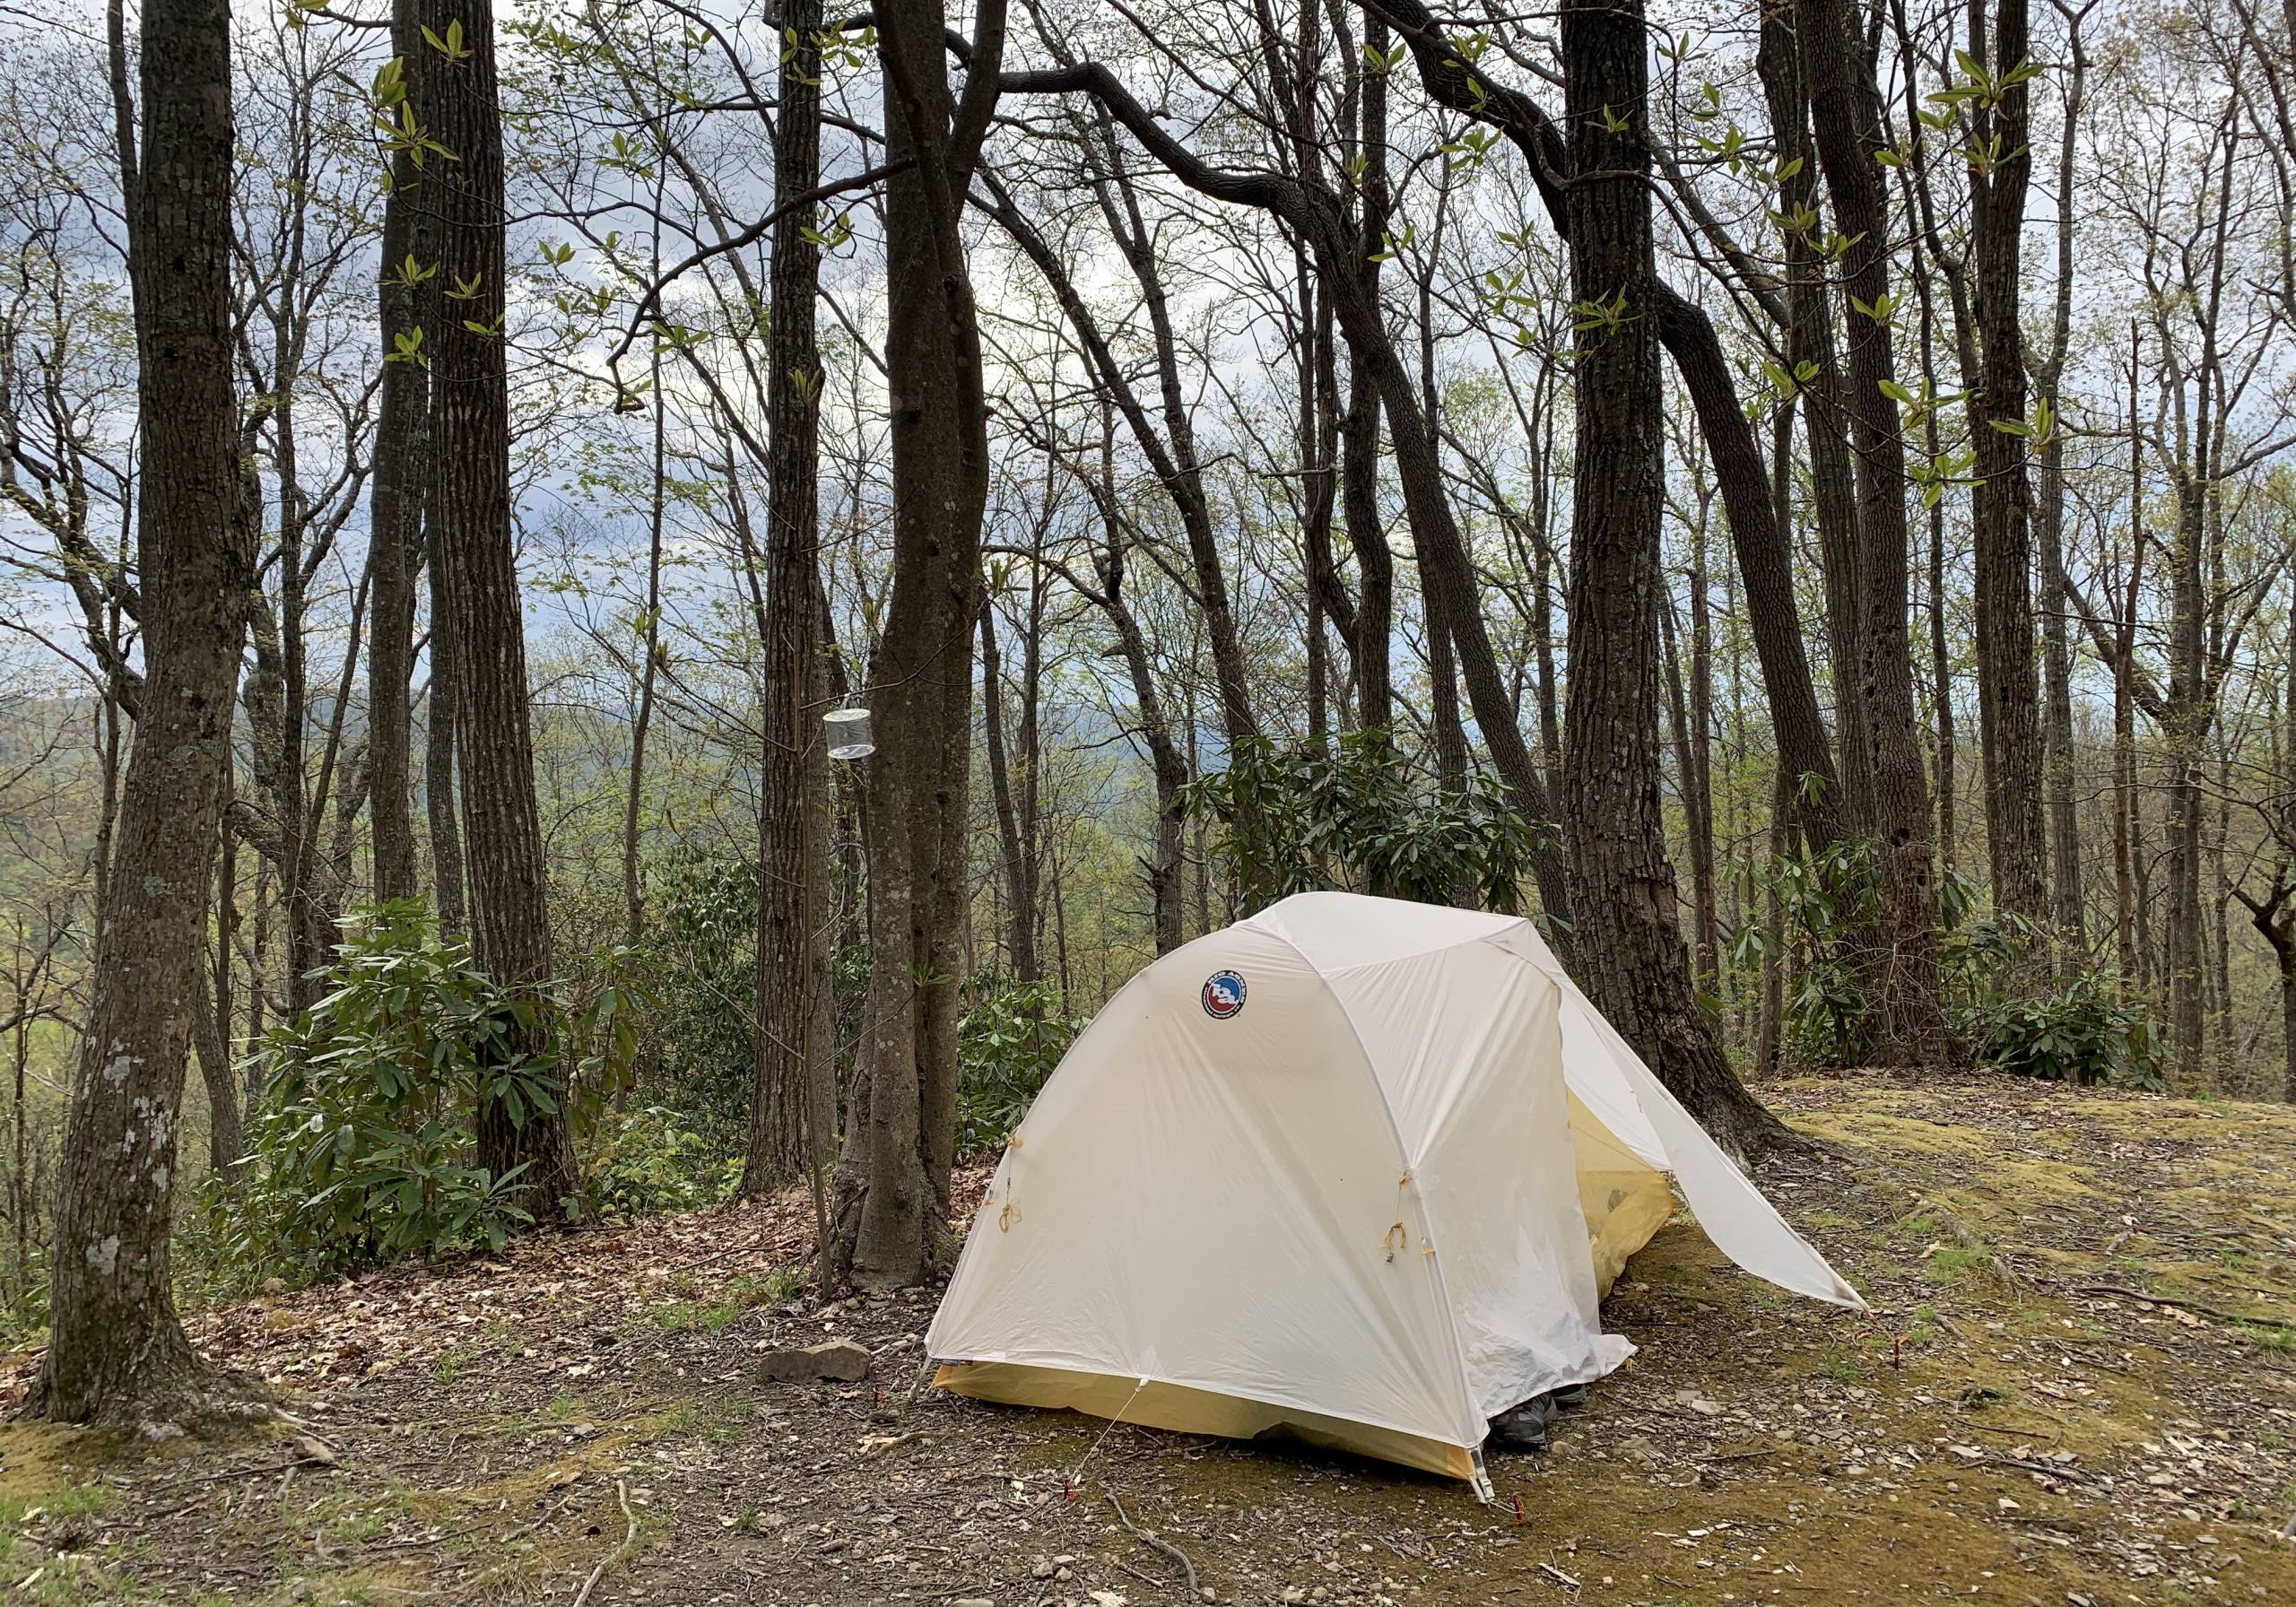 Big Agnes solution stained Tiger Wall UL tent pitched in camp on AT